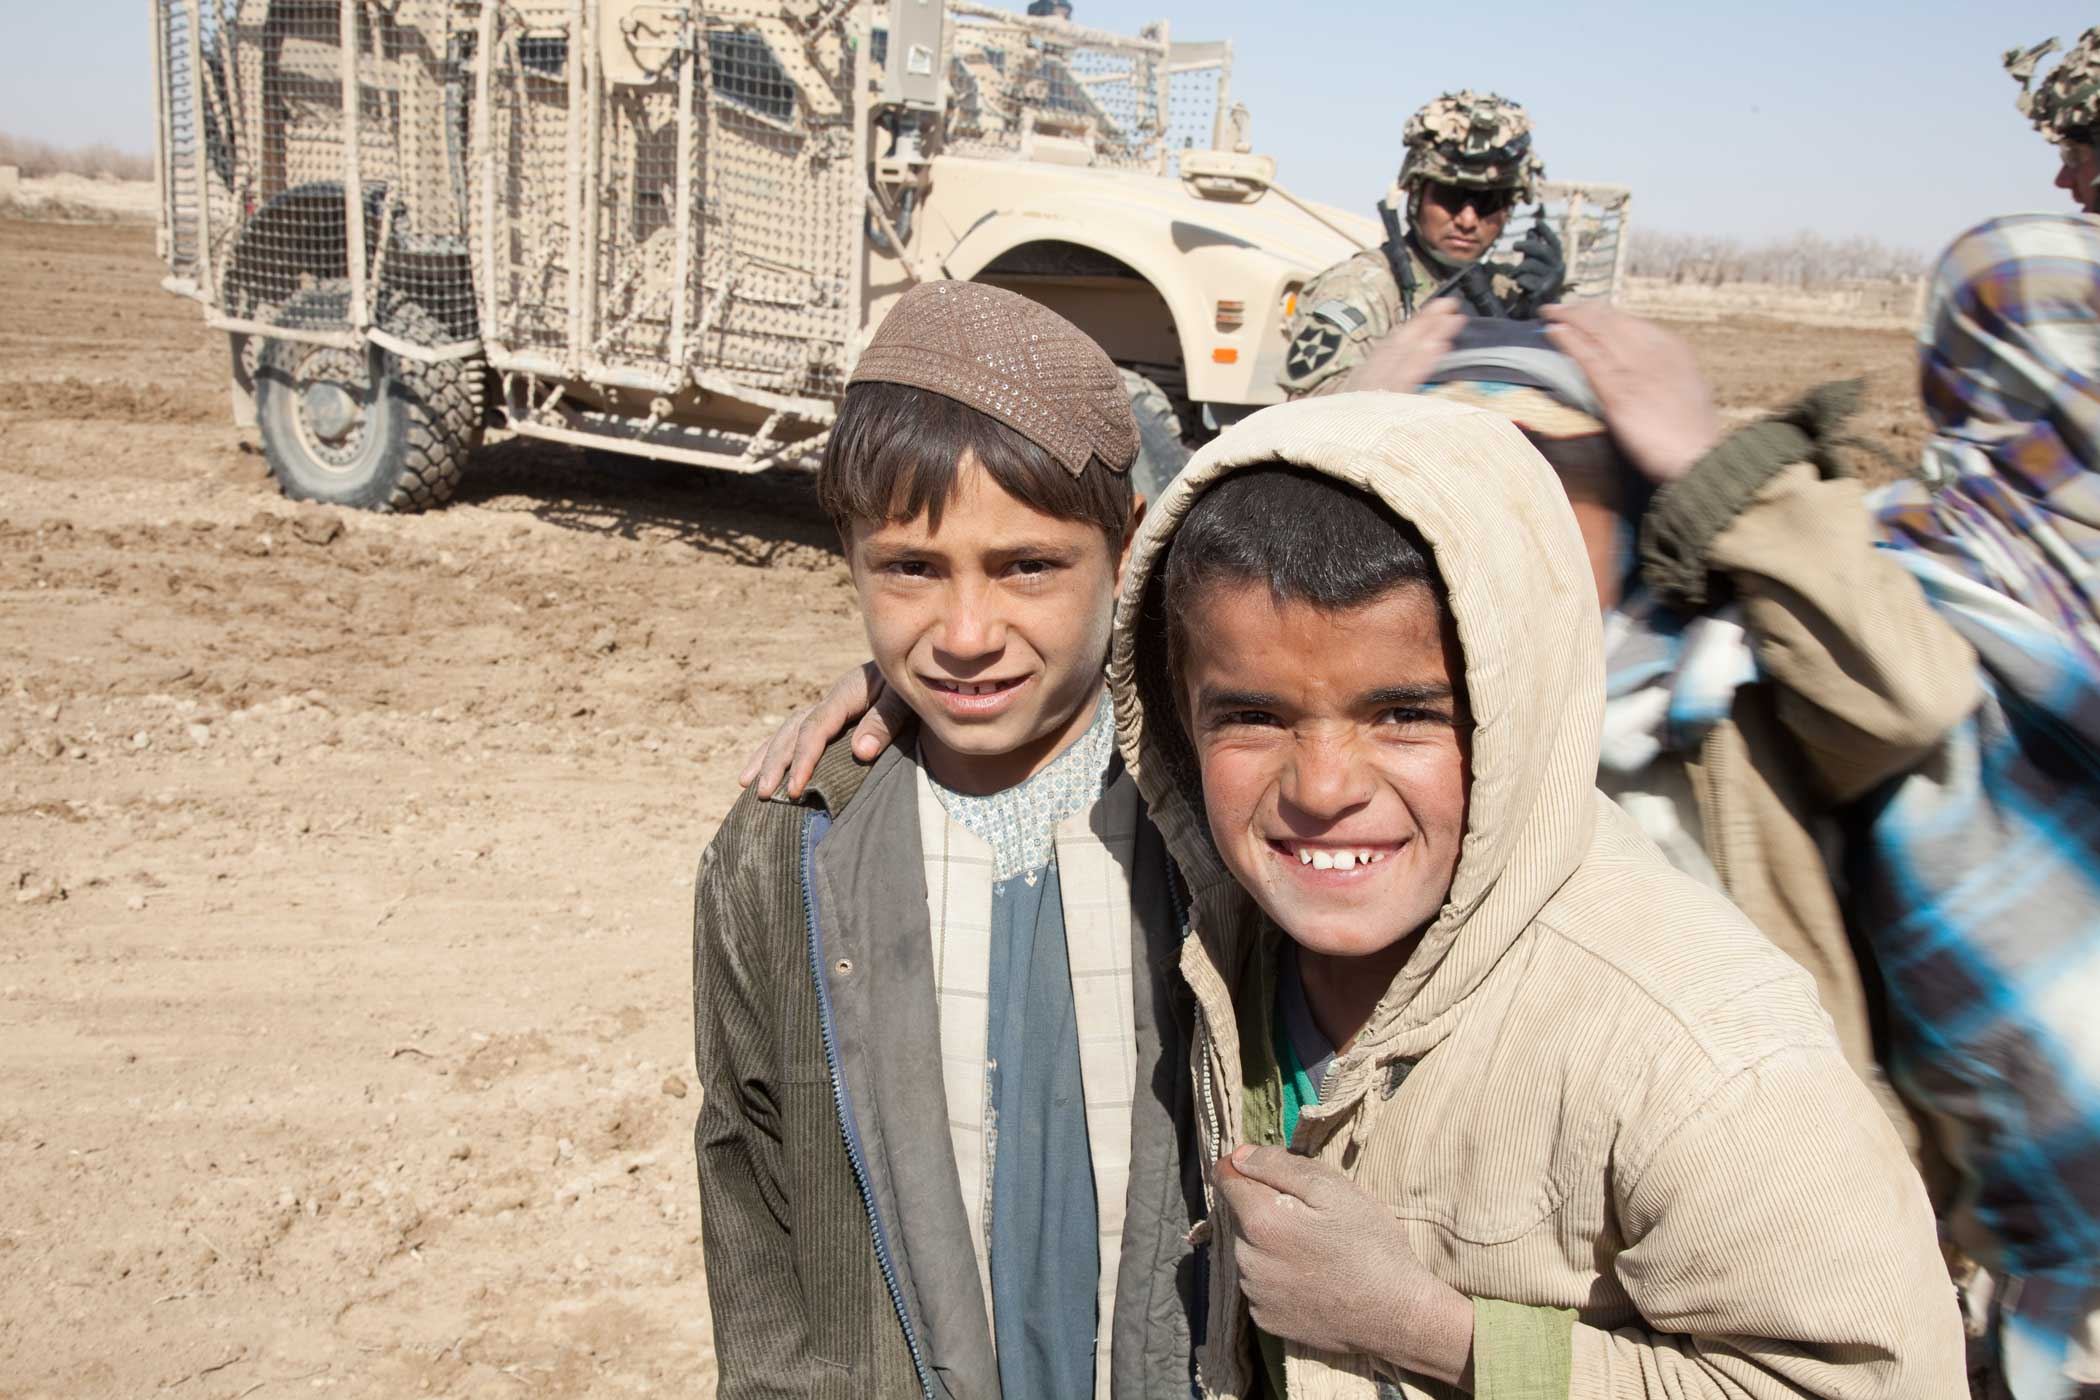 Children from a nearby village pose for a photograph in Zharay district, Kandahar province, Afghanistan, in 2012. Photo by Spc. Jason Nolte, courtesy of U.S. Army.